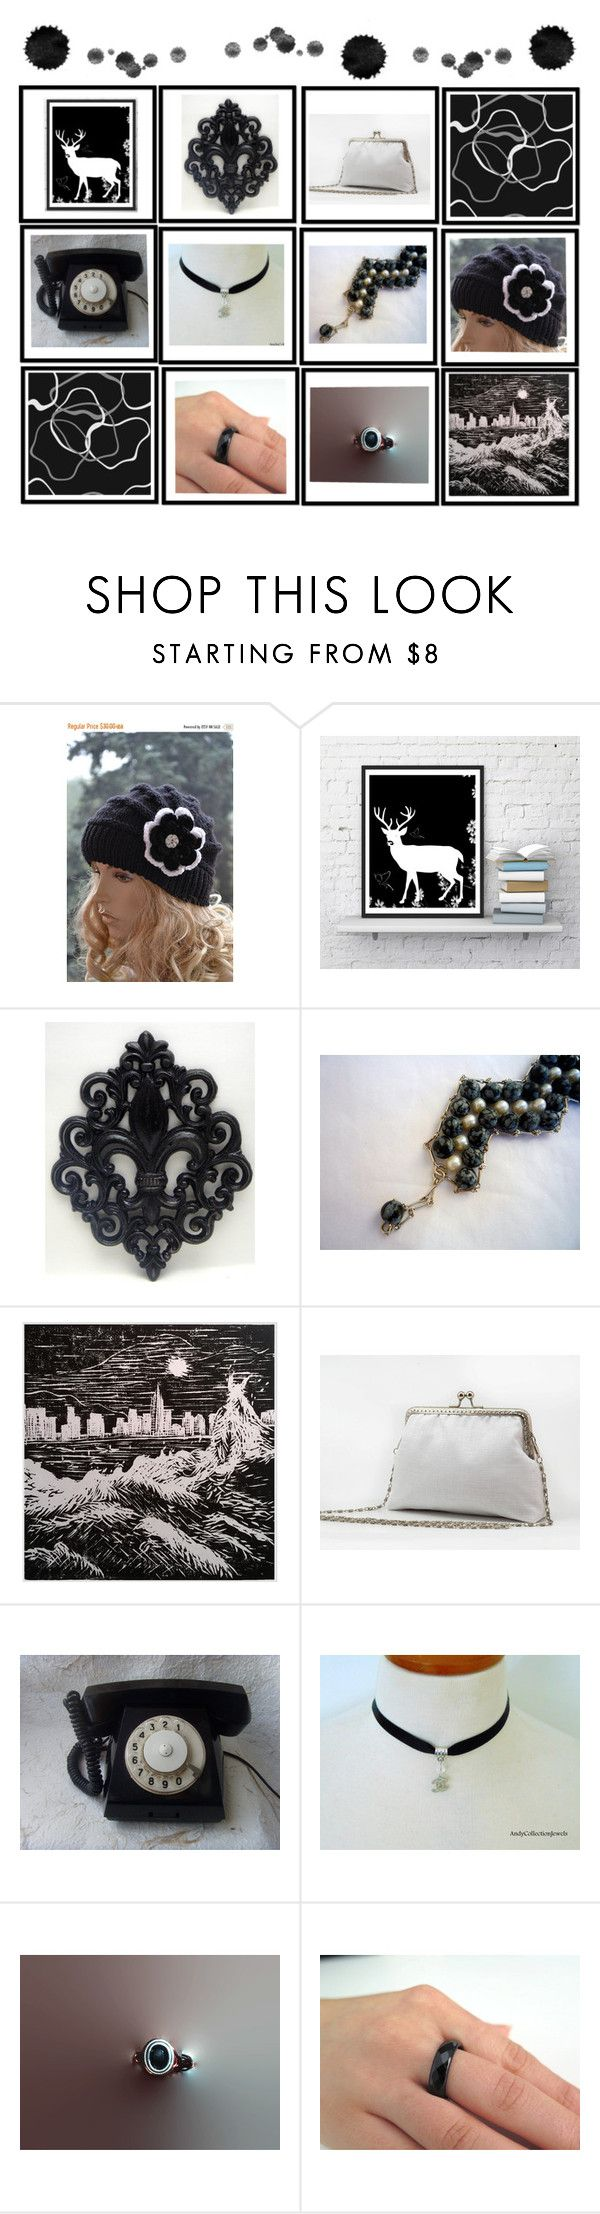 Black & White Treasures of Etsy by tamarastreasuretrove on Polyvore featuring interior, interiors, interior design, home, home decor, interior decorating, etsy, jewelry, homedecor and homedesign